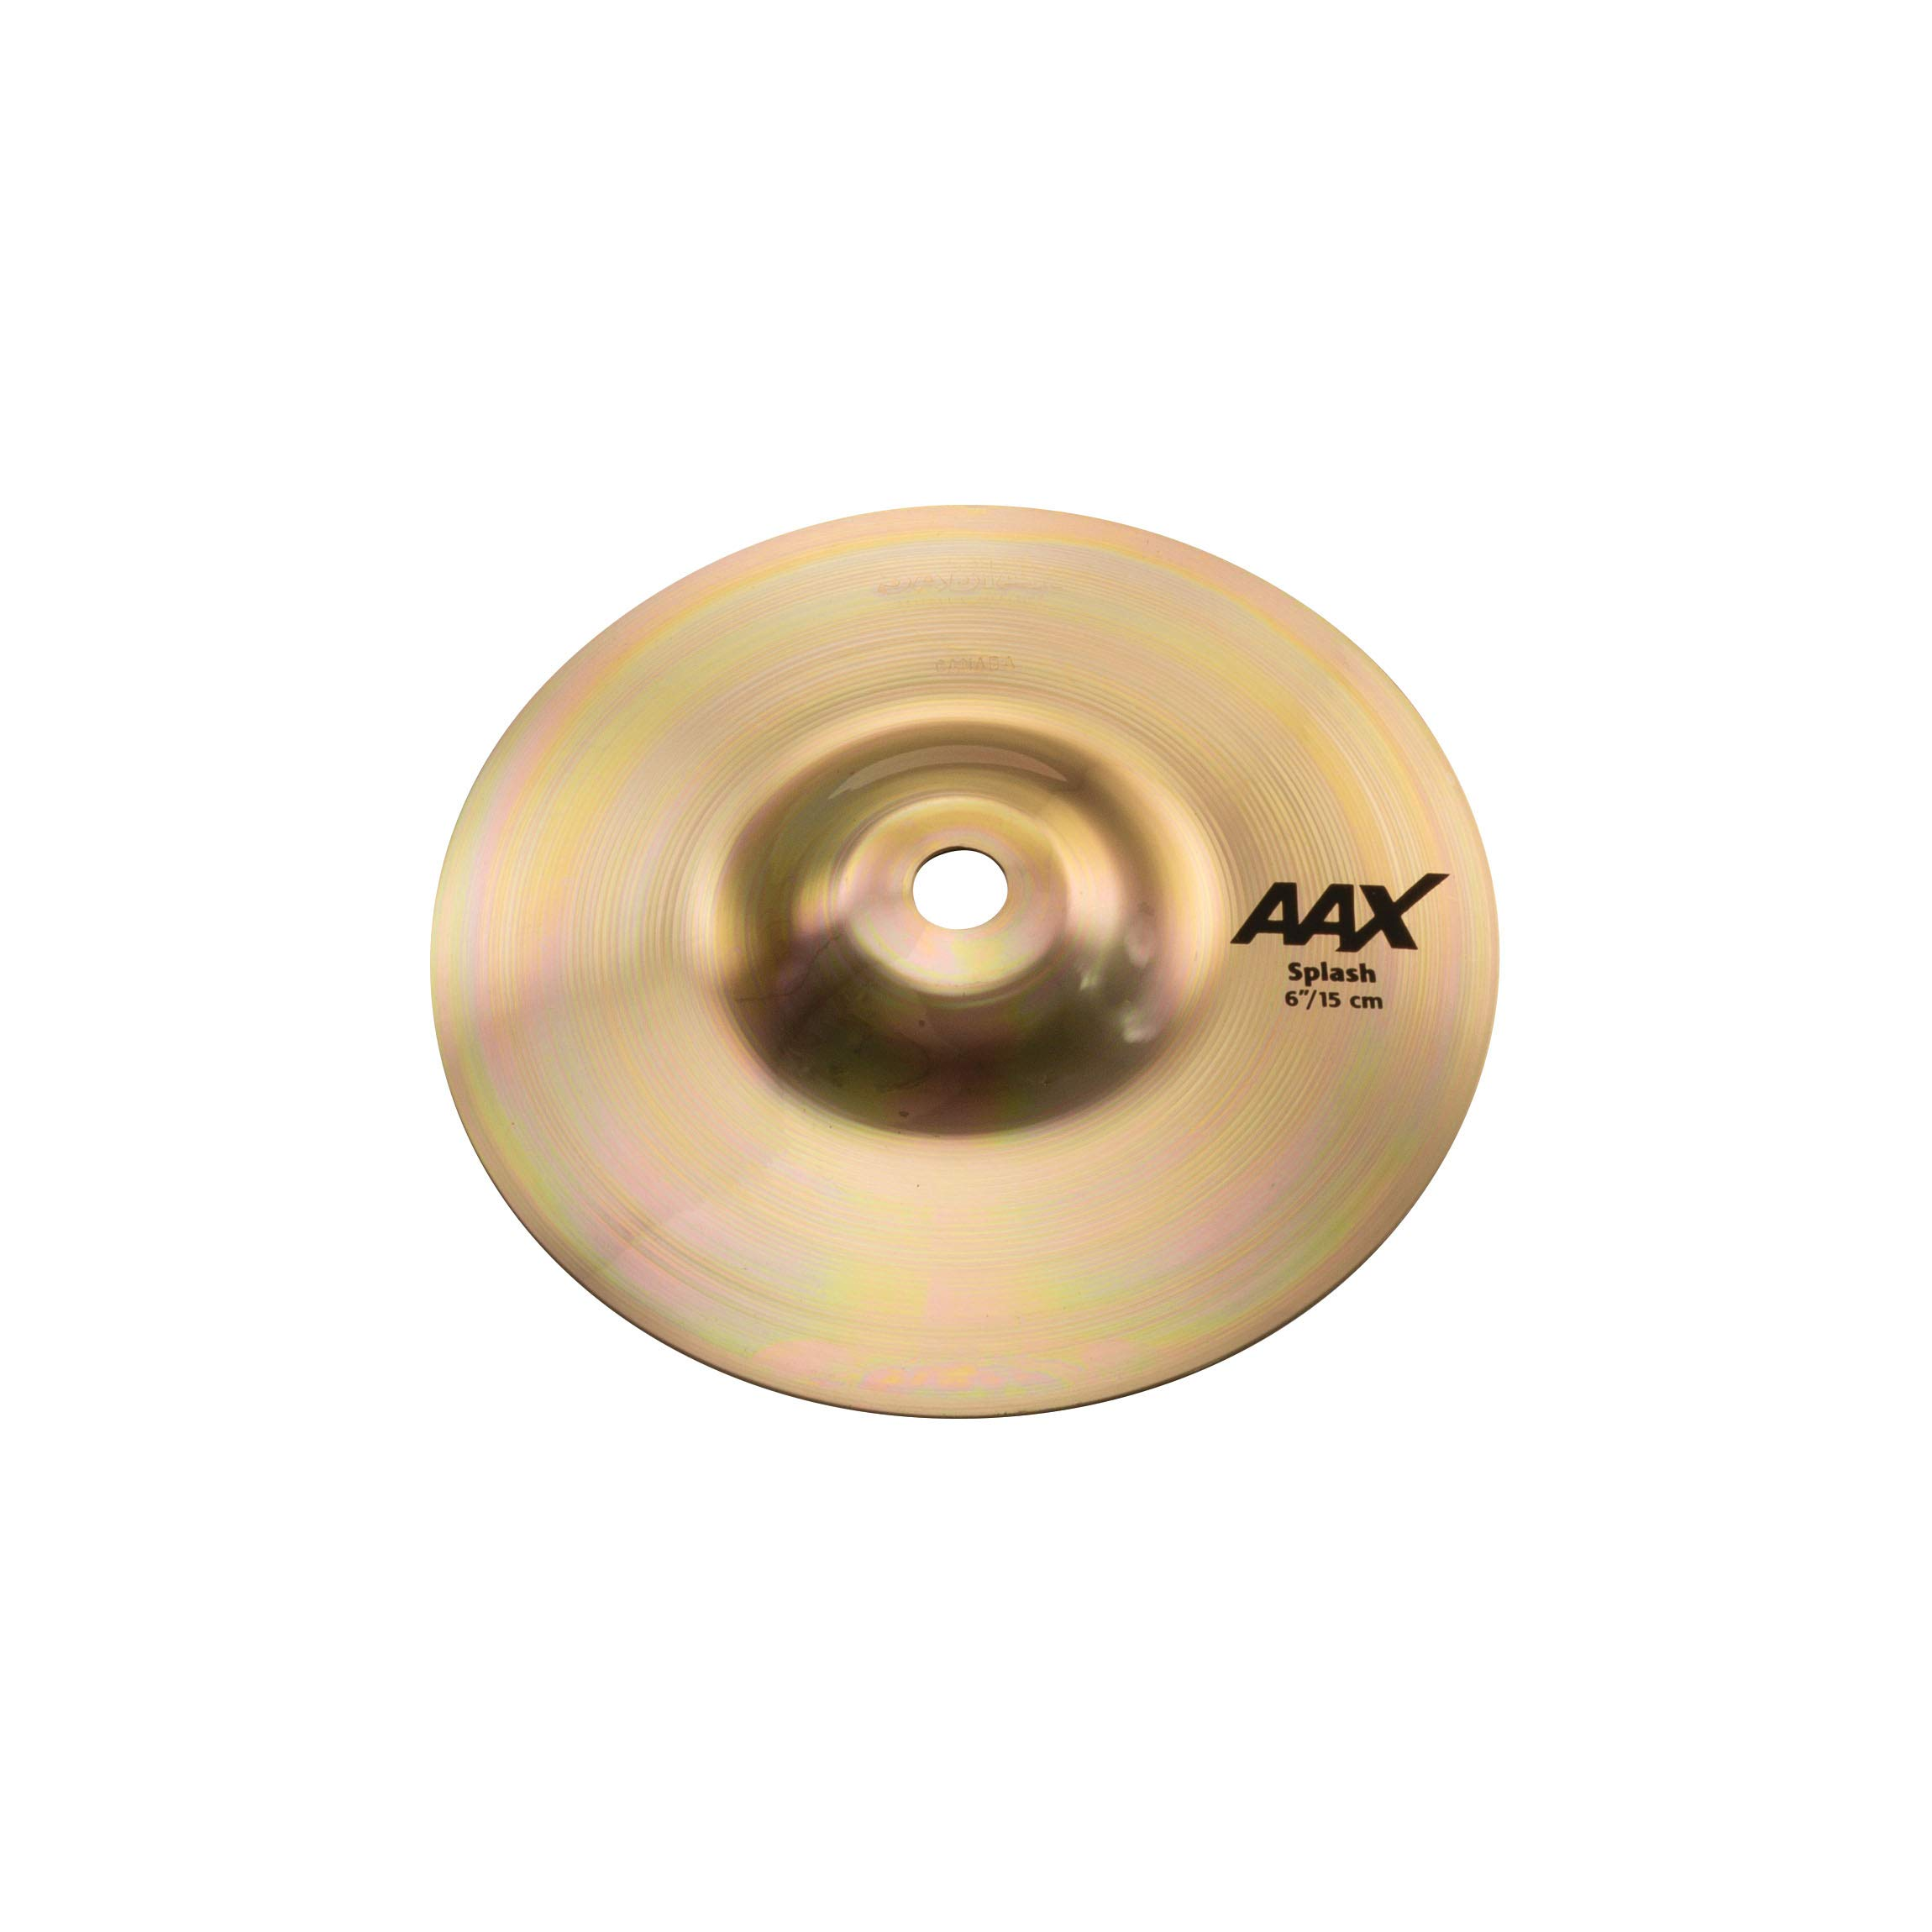 Sabian Cymbal Variety Package, inch (20605XB)